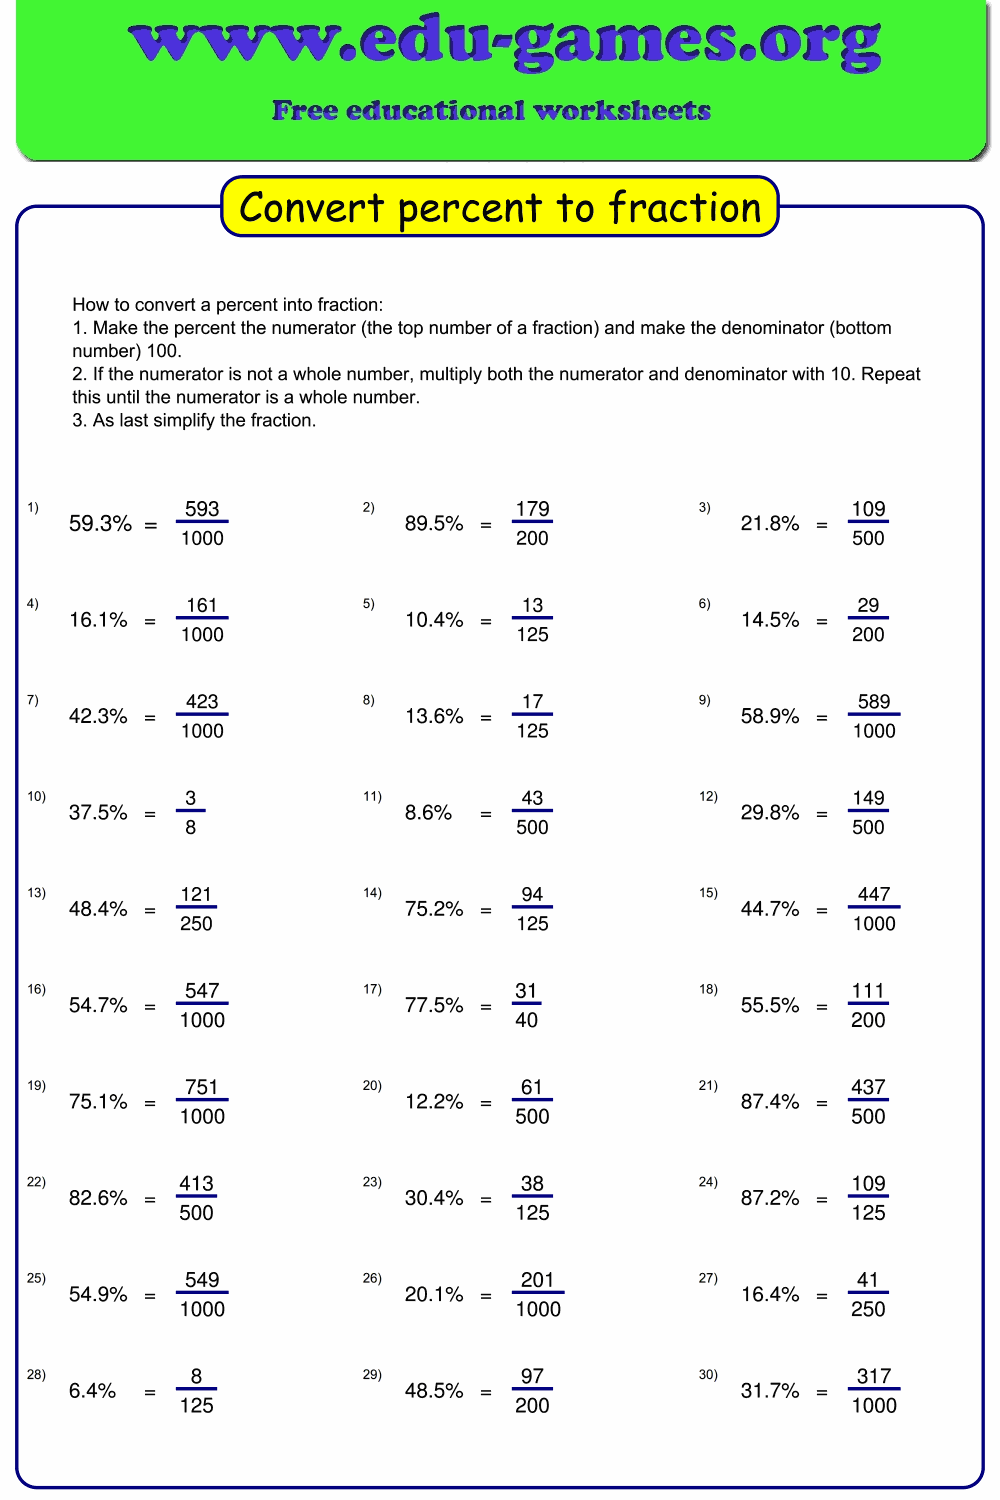 The Worksheet Maker Generates Worksheets For Converting Percentages Into Fractios Fractions Educational Worksheets Printable Math Worksheets